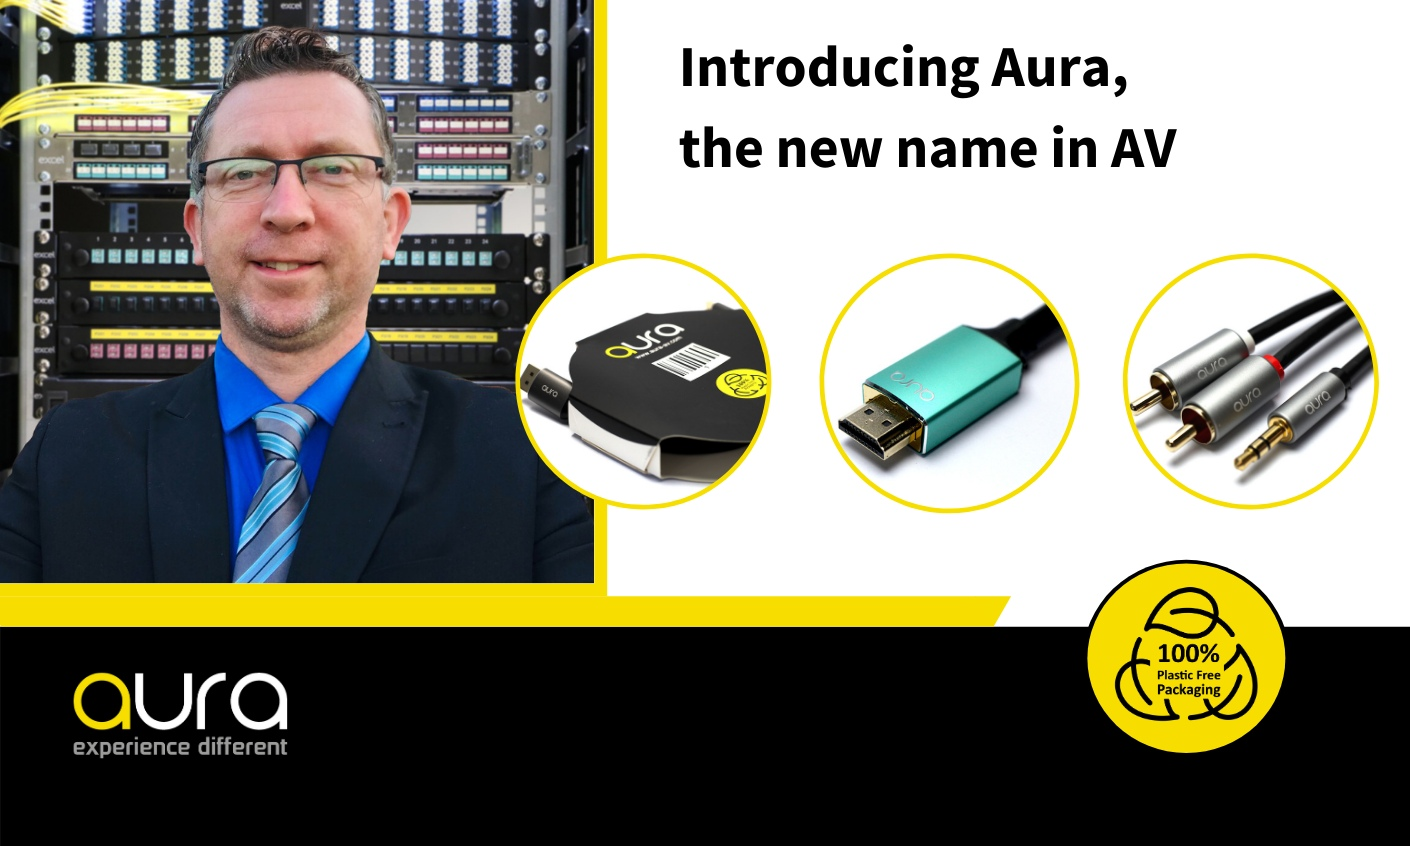 Mayflex Launch New AV Brand - Aura